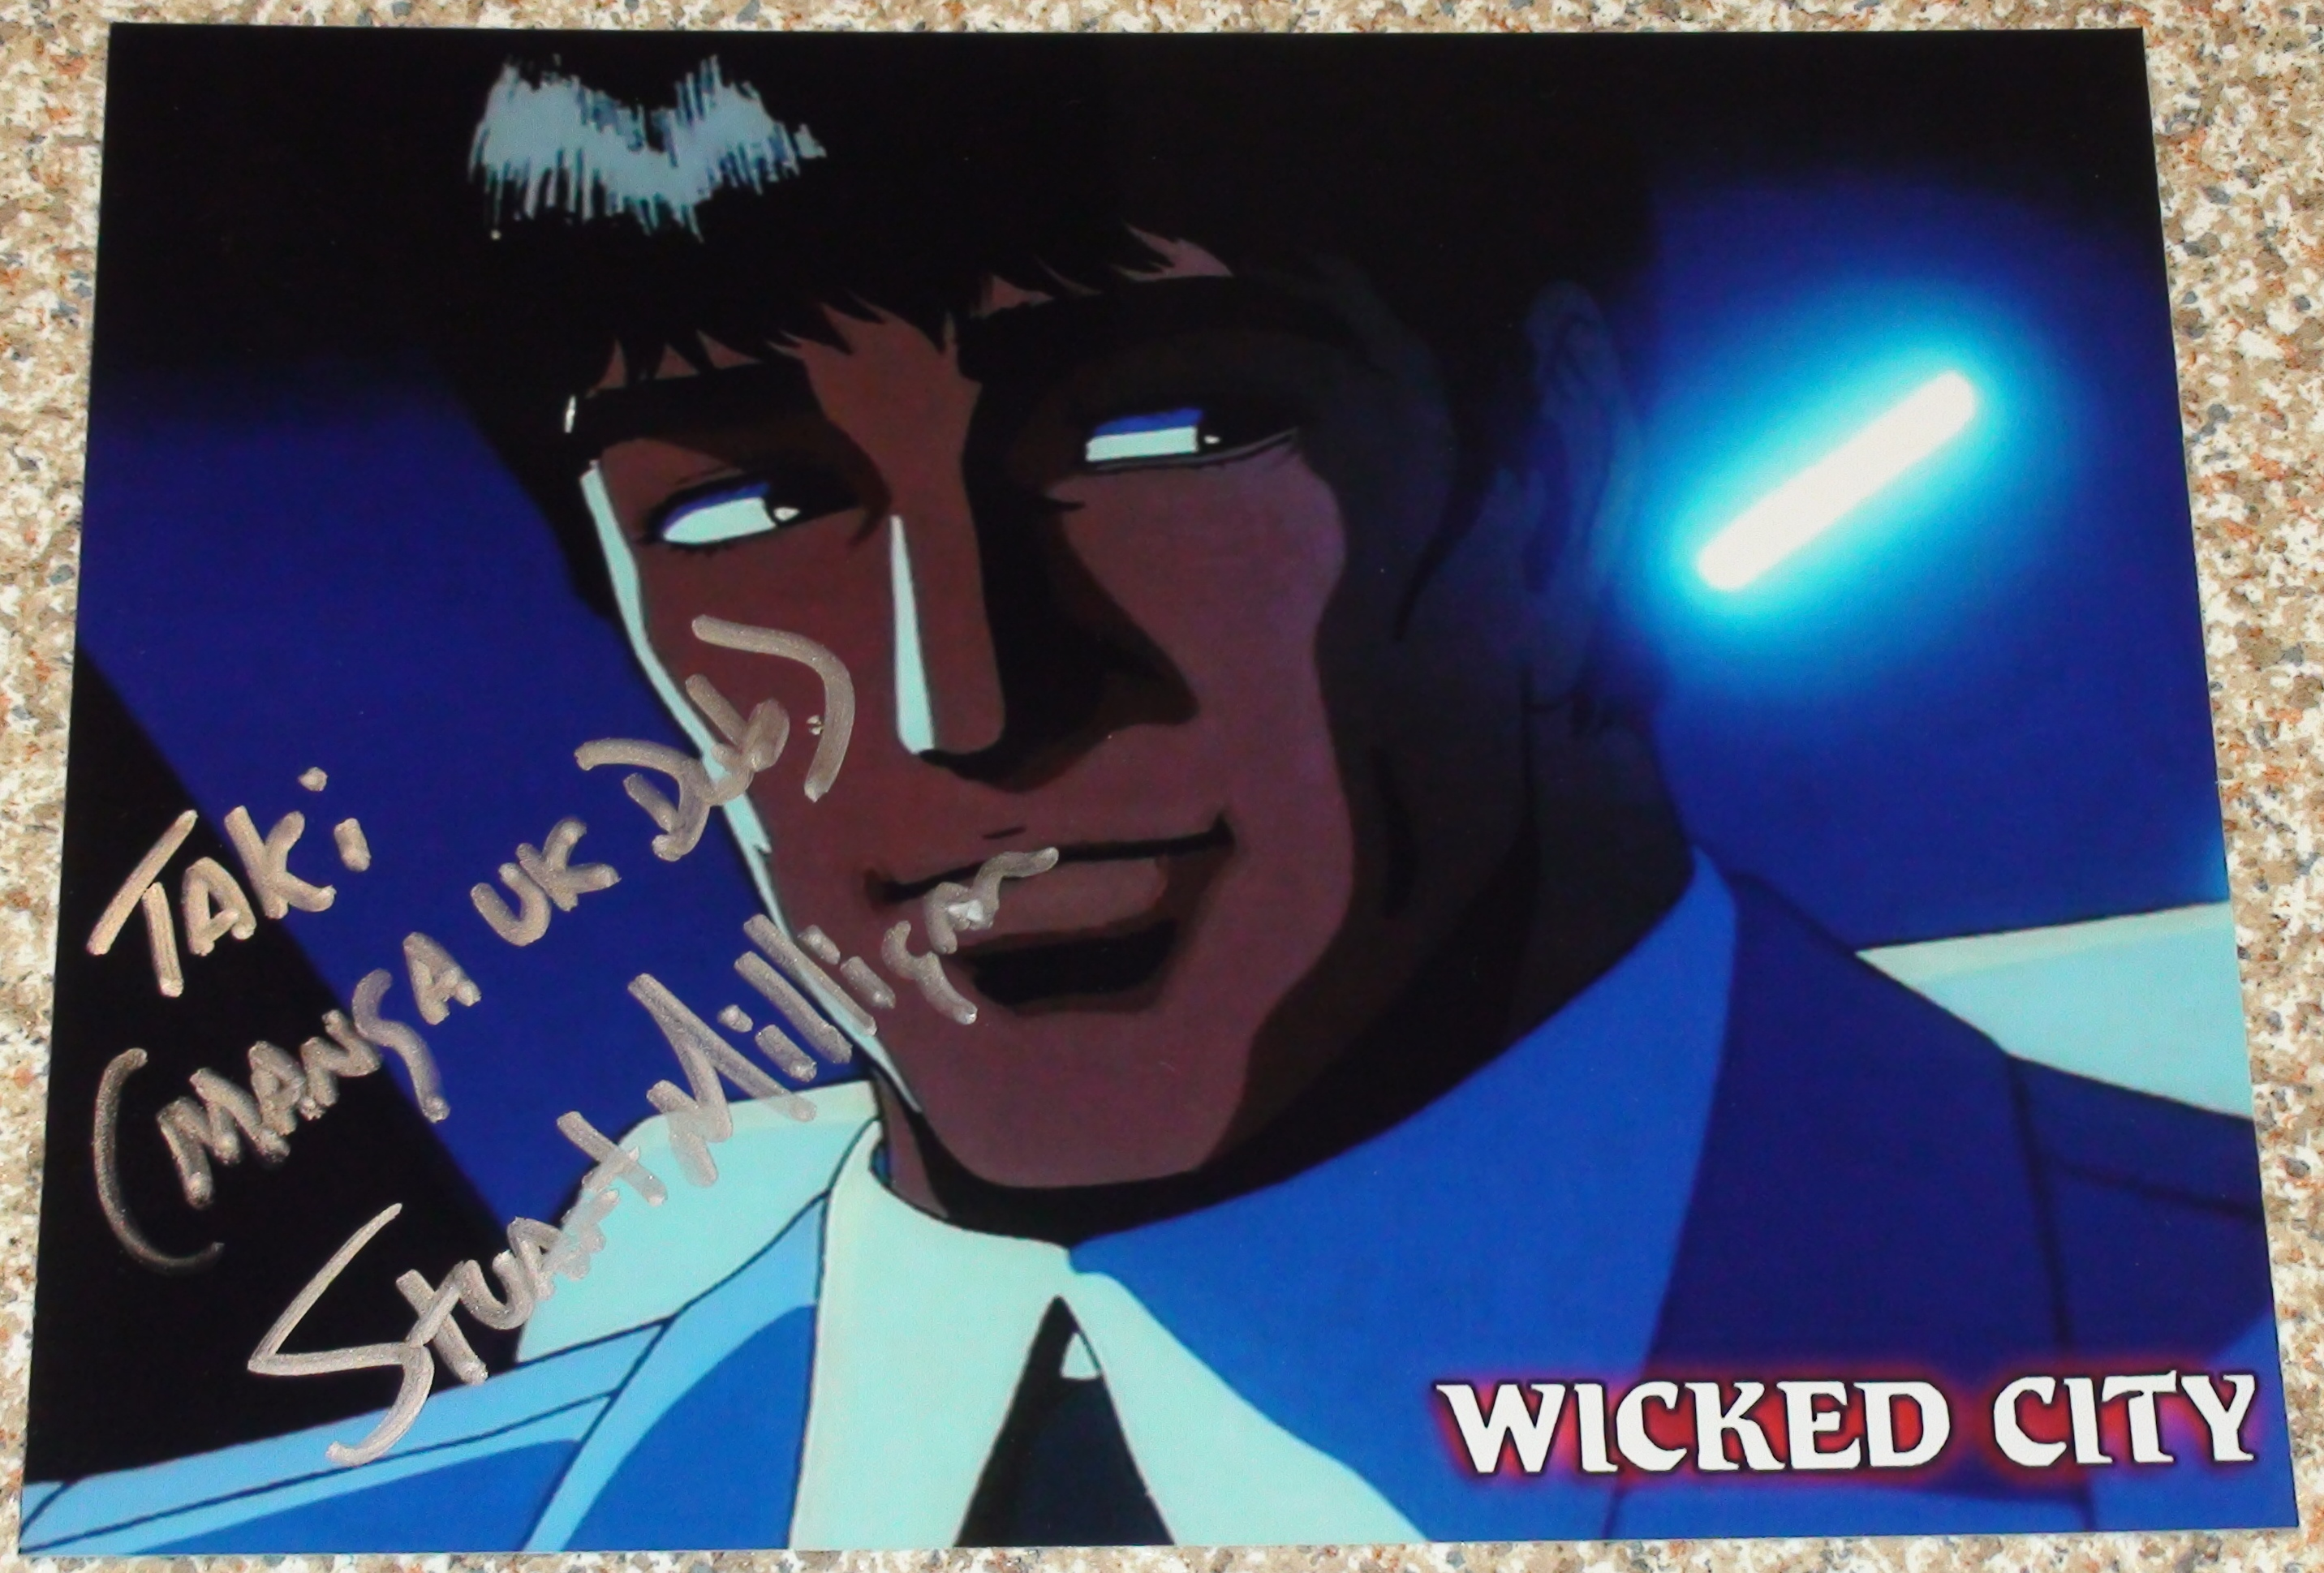 Wicked City - Stuart Milligan